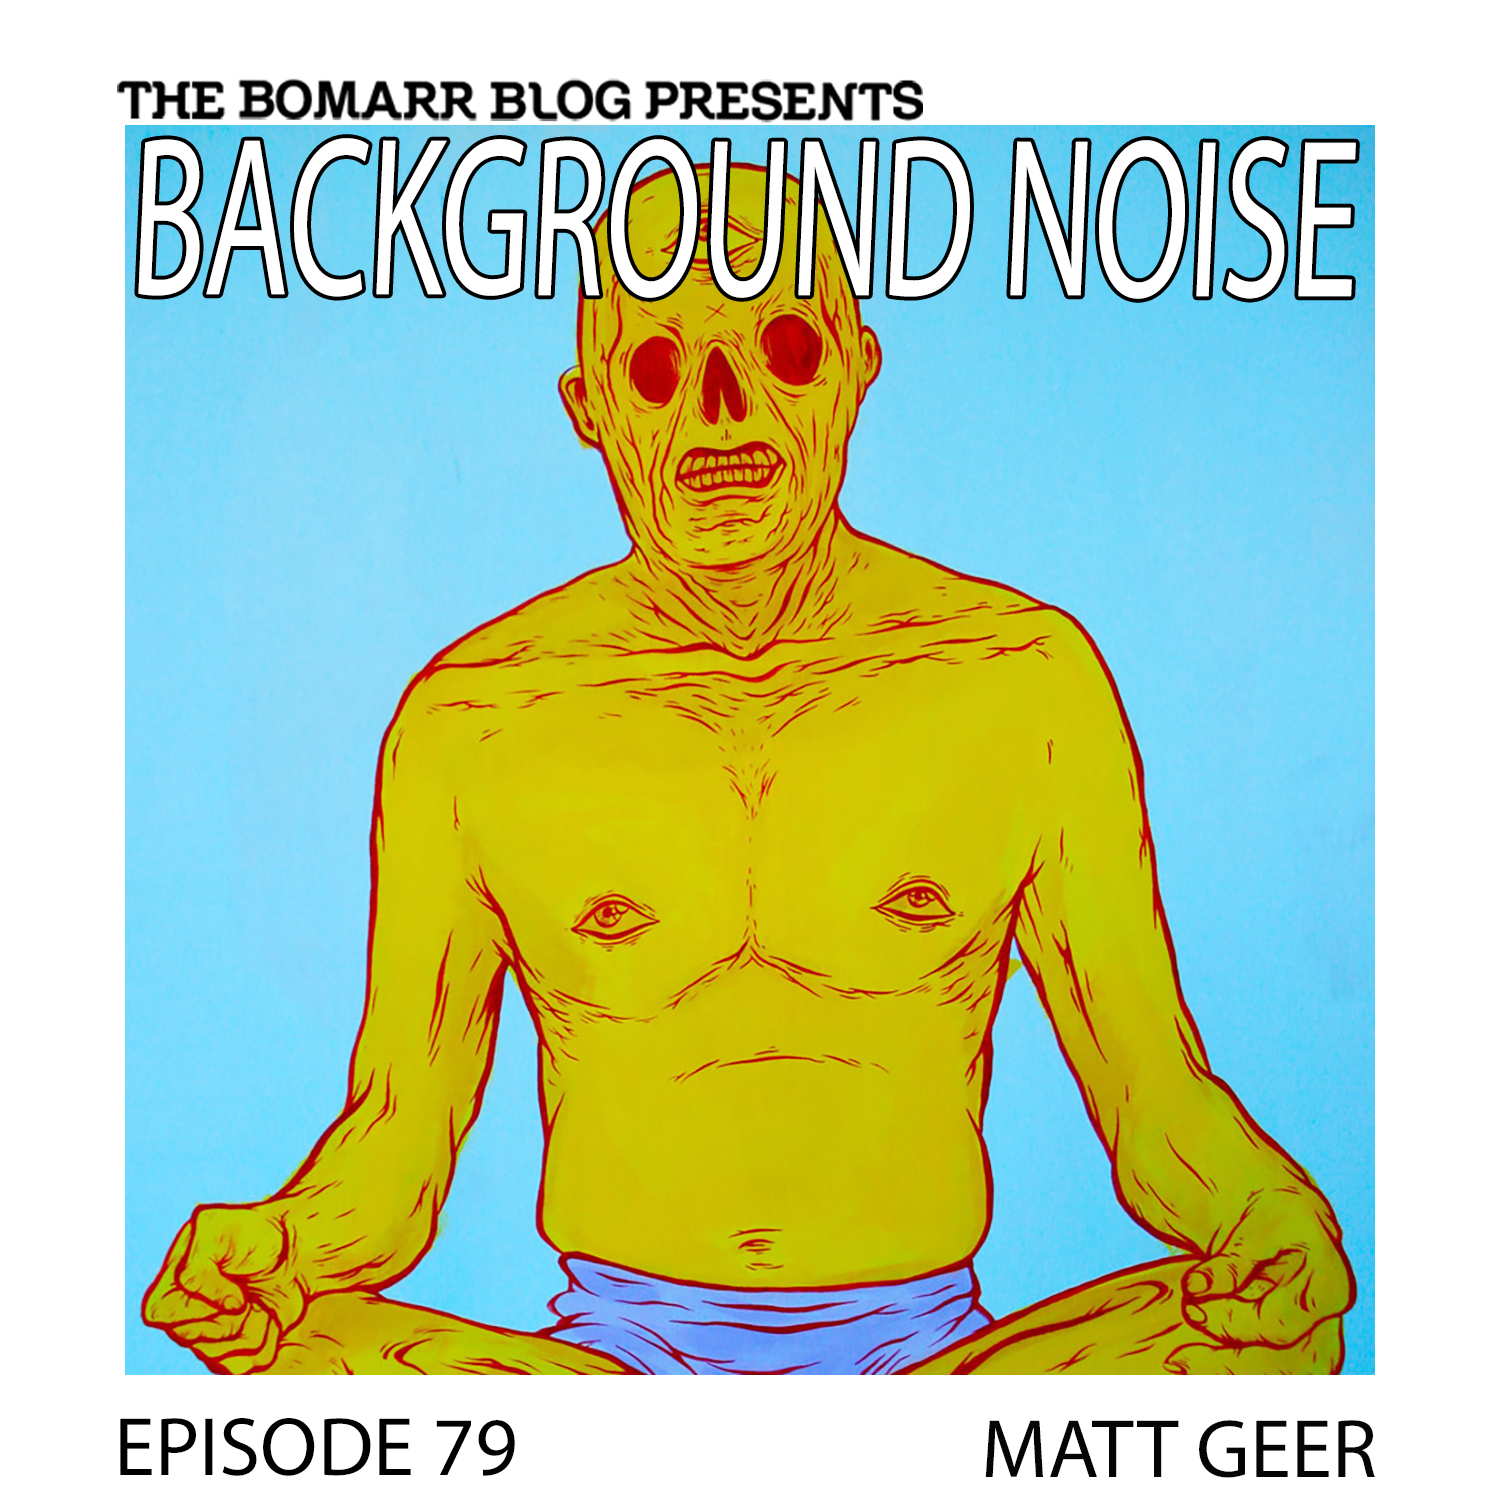 THE BACKGROUND NOISE PODCAST SERIES FOCUSES ON THE MUSIC THAT ARTISTS LISTEN TO WHEN THEY WORK, WHAT MUSIC INSPIRES THEM, OR JUST MUSIC THEY LIKE. THIS WEEK, IN EPISODE 79, THE FOCUS IS ON ARTIST MATT GEER